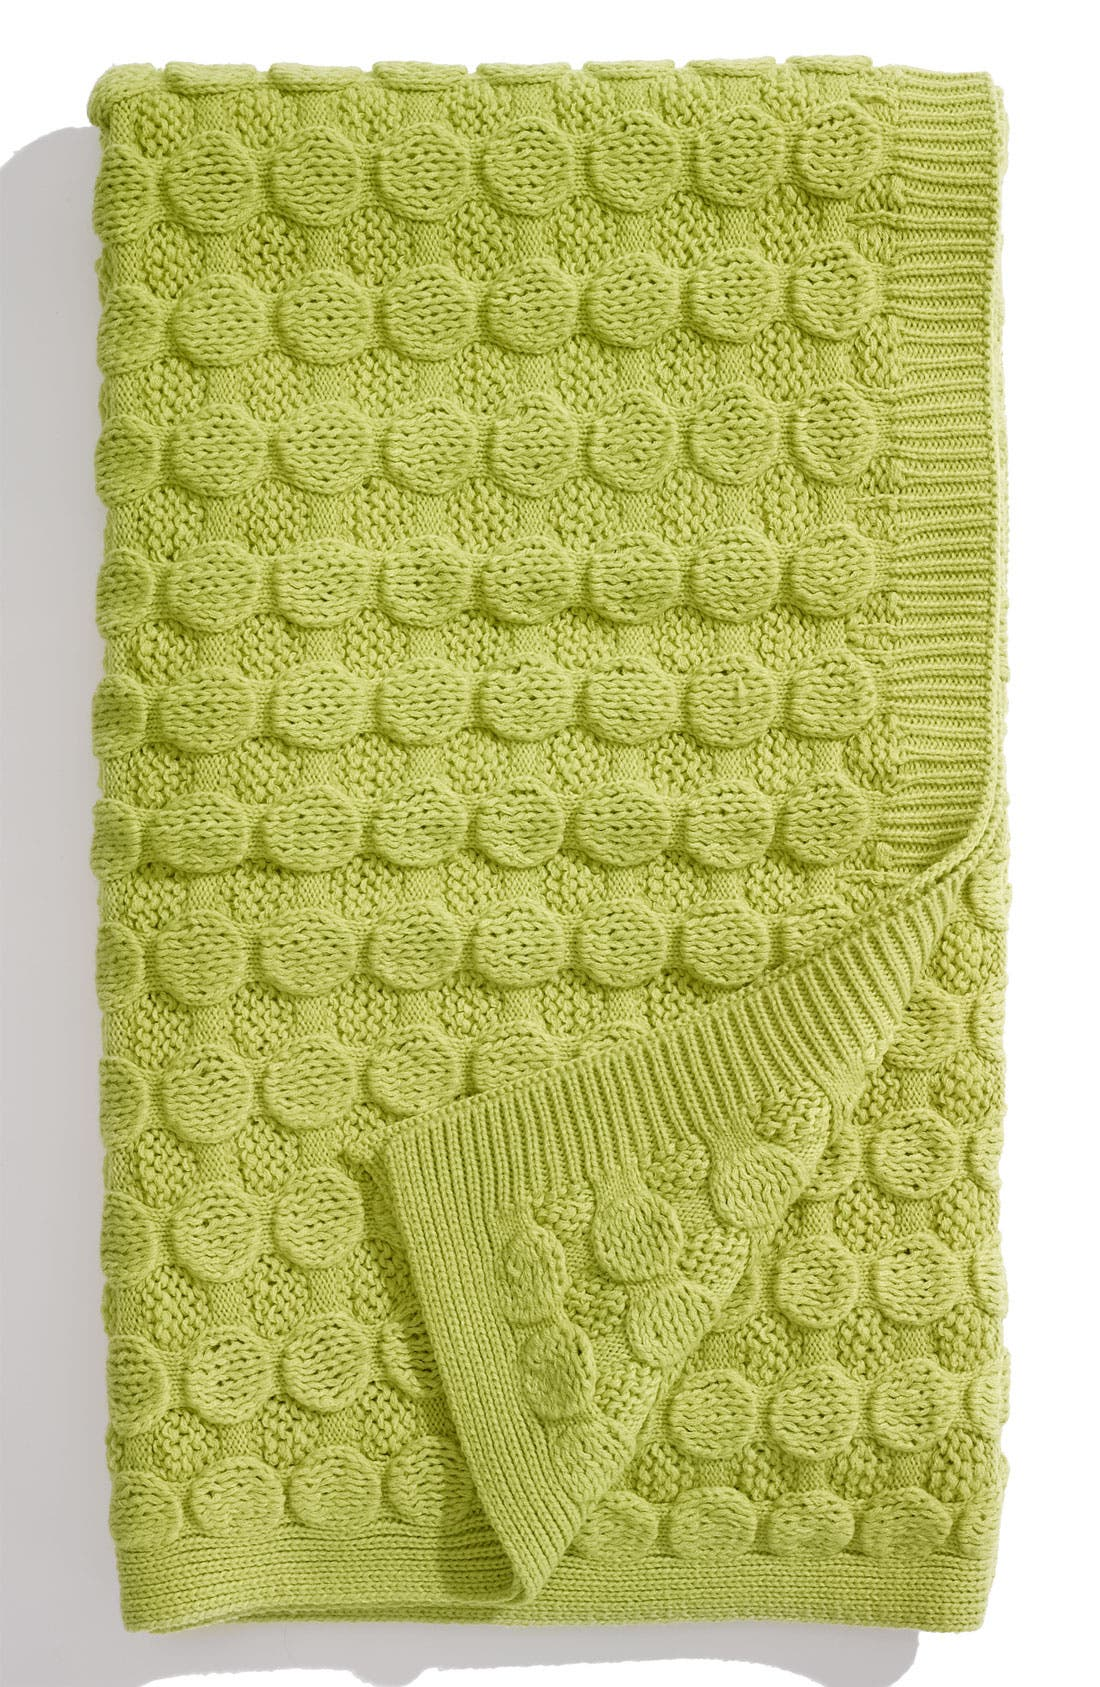 Alternate Image 1 Selected - Nordstrom at Home 'Bubble Wrap' Knit Throw